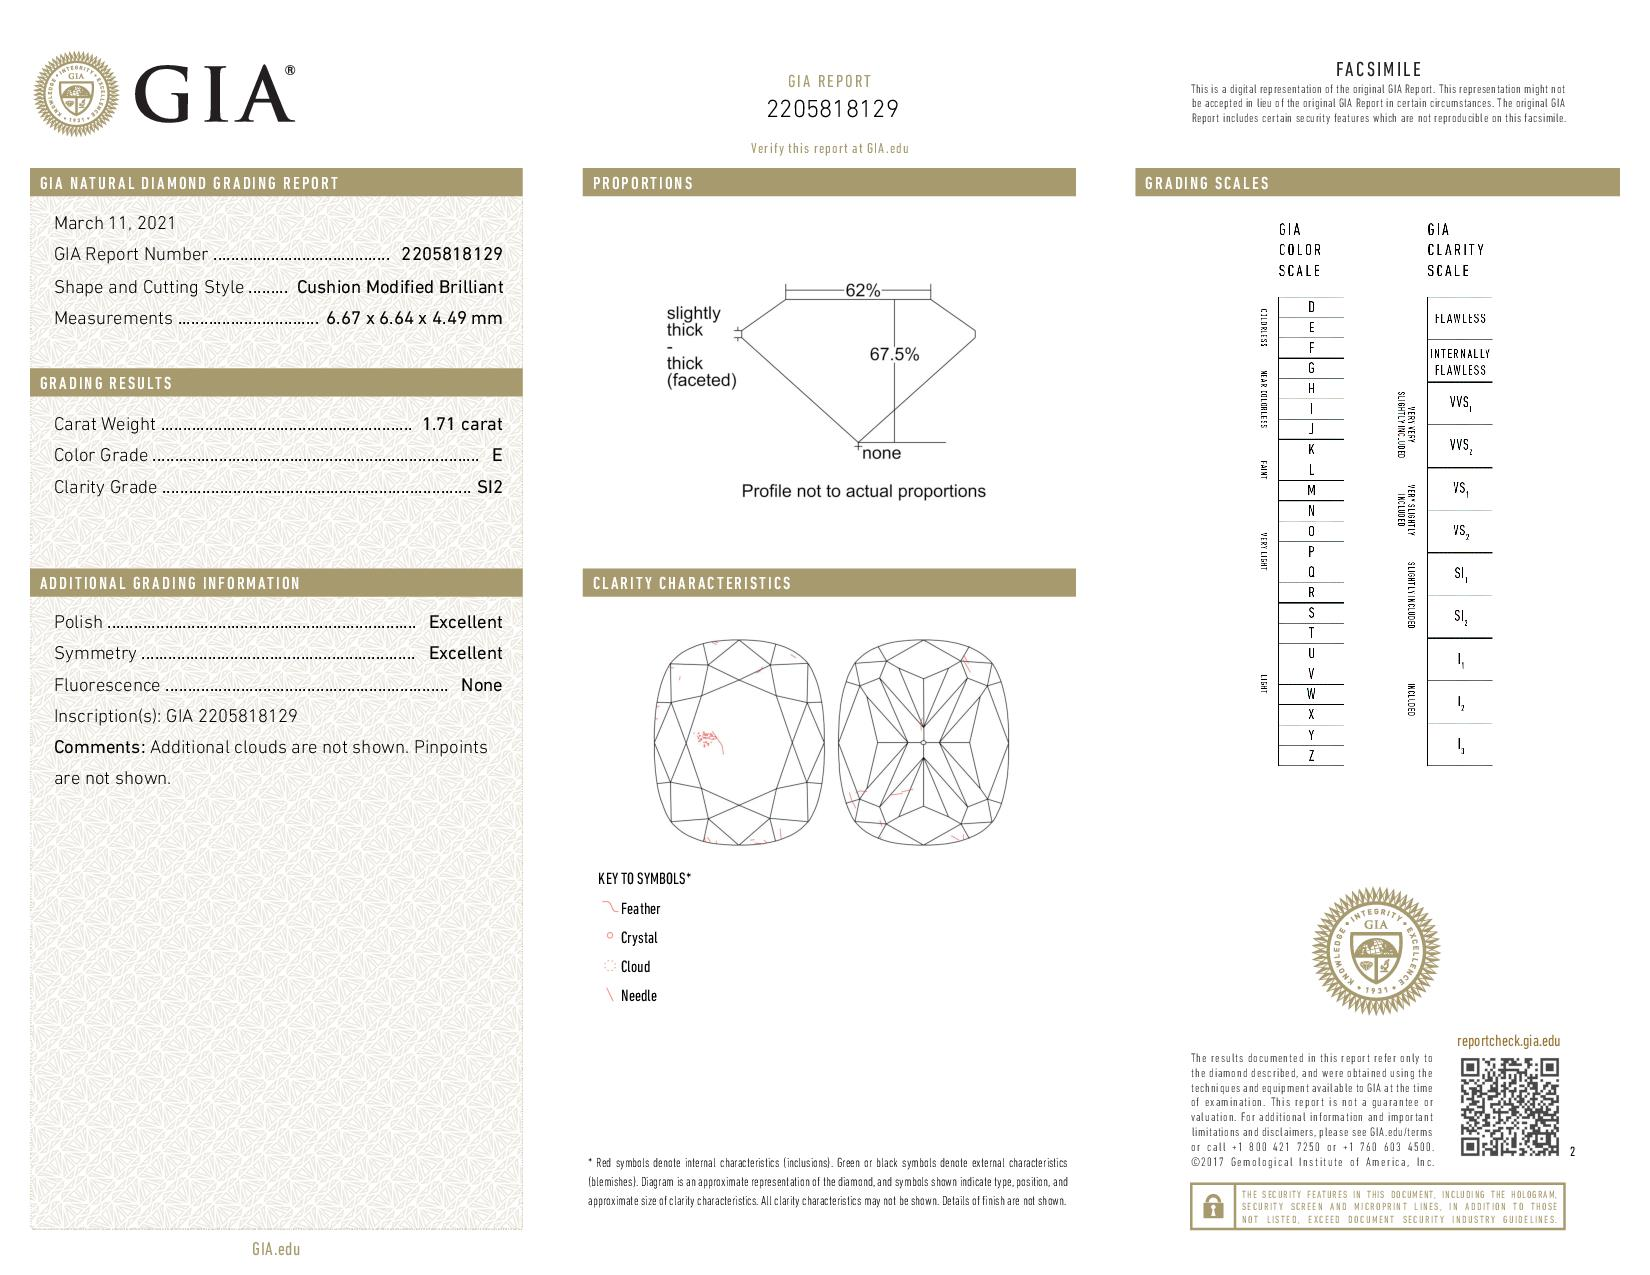 This is a 1.71 carat cushion shape, E color, SI2 clarity natural diamond accompanied by a GIA grading report.